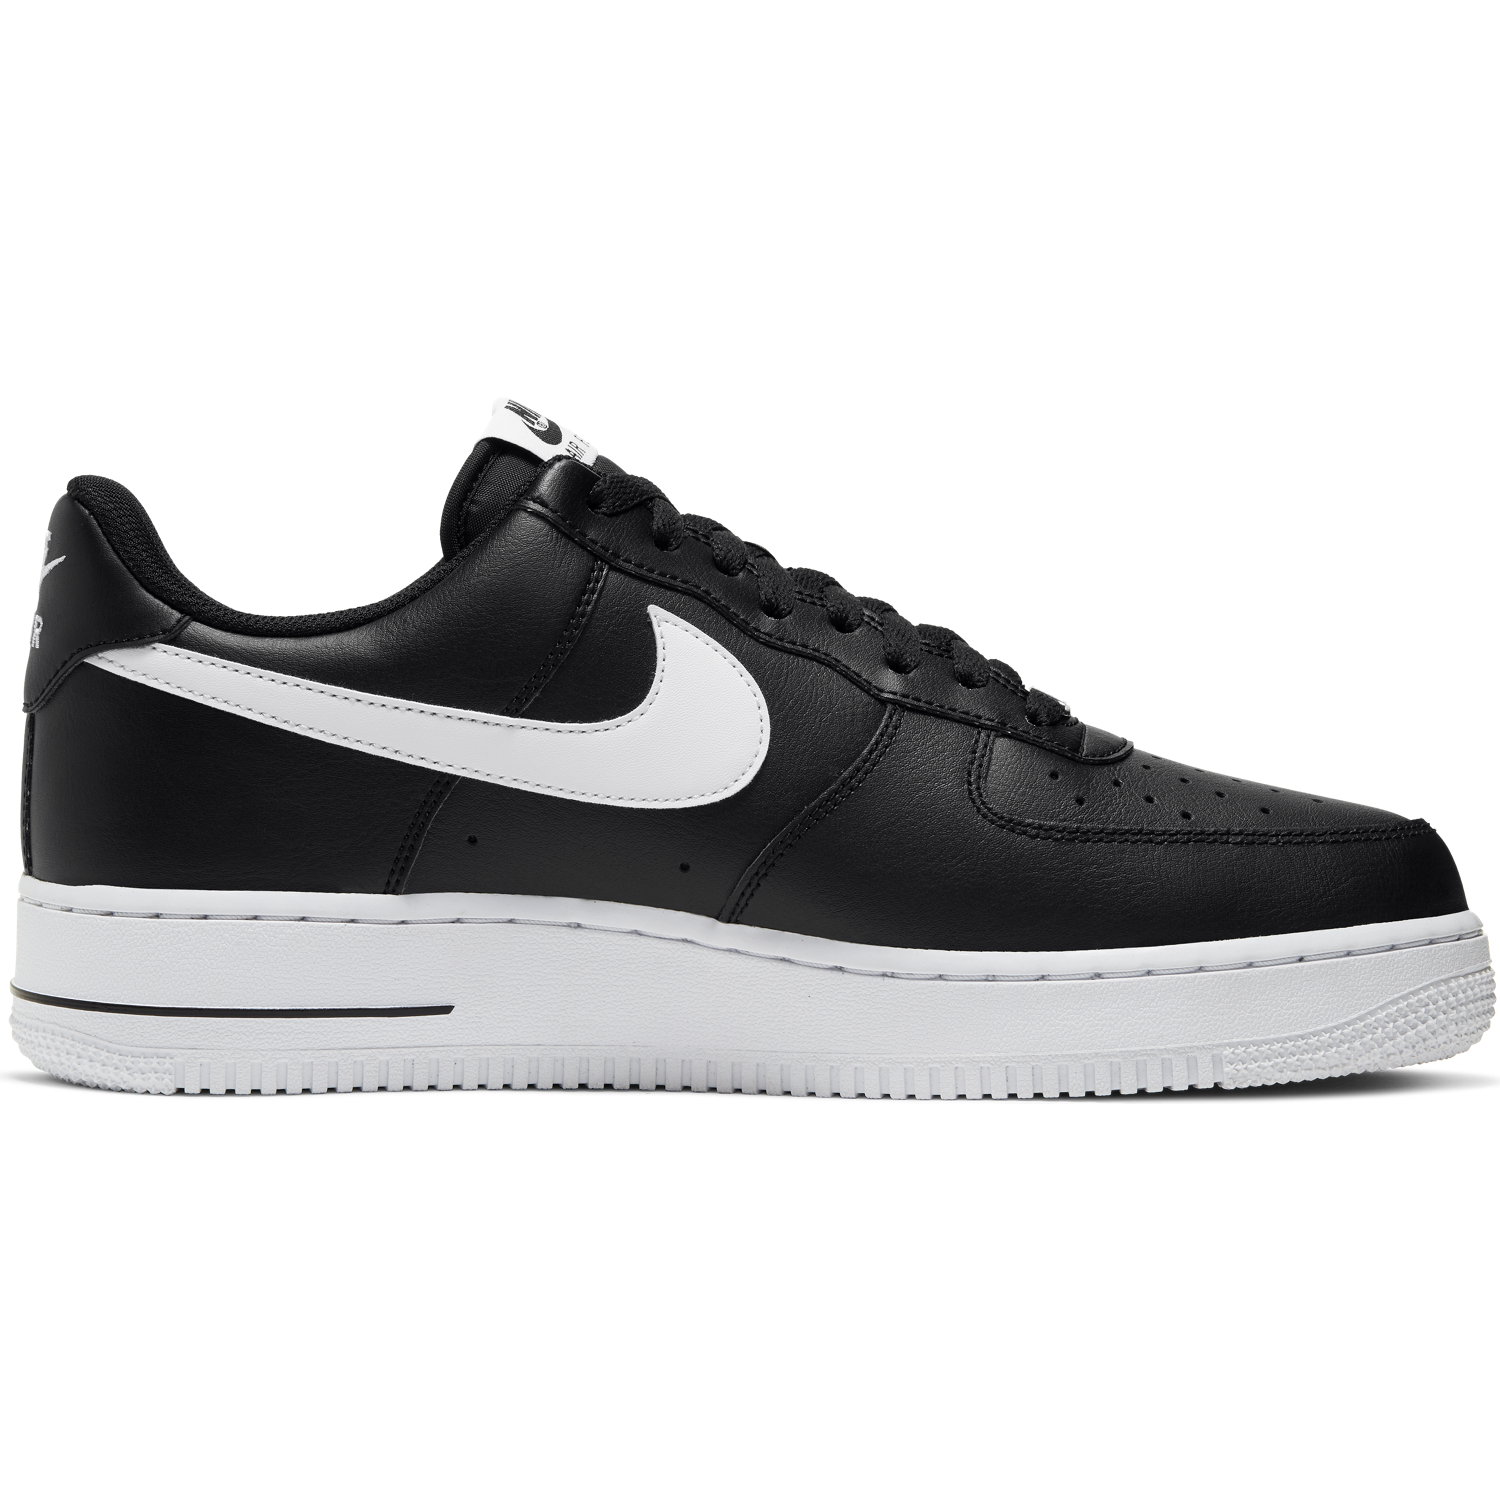 NIKE M'S FOOTWEAR AIR FORCE 1 '07 - BLACK/WHITE